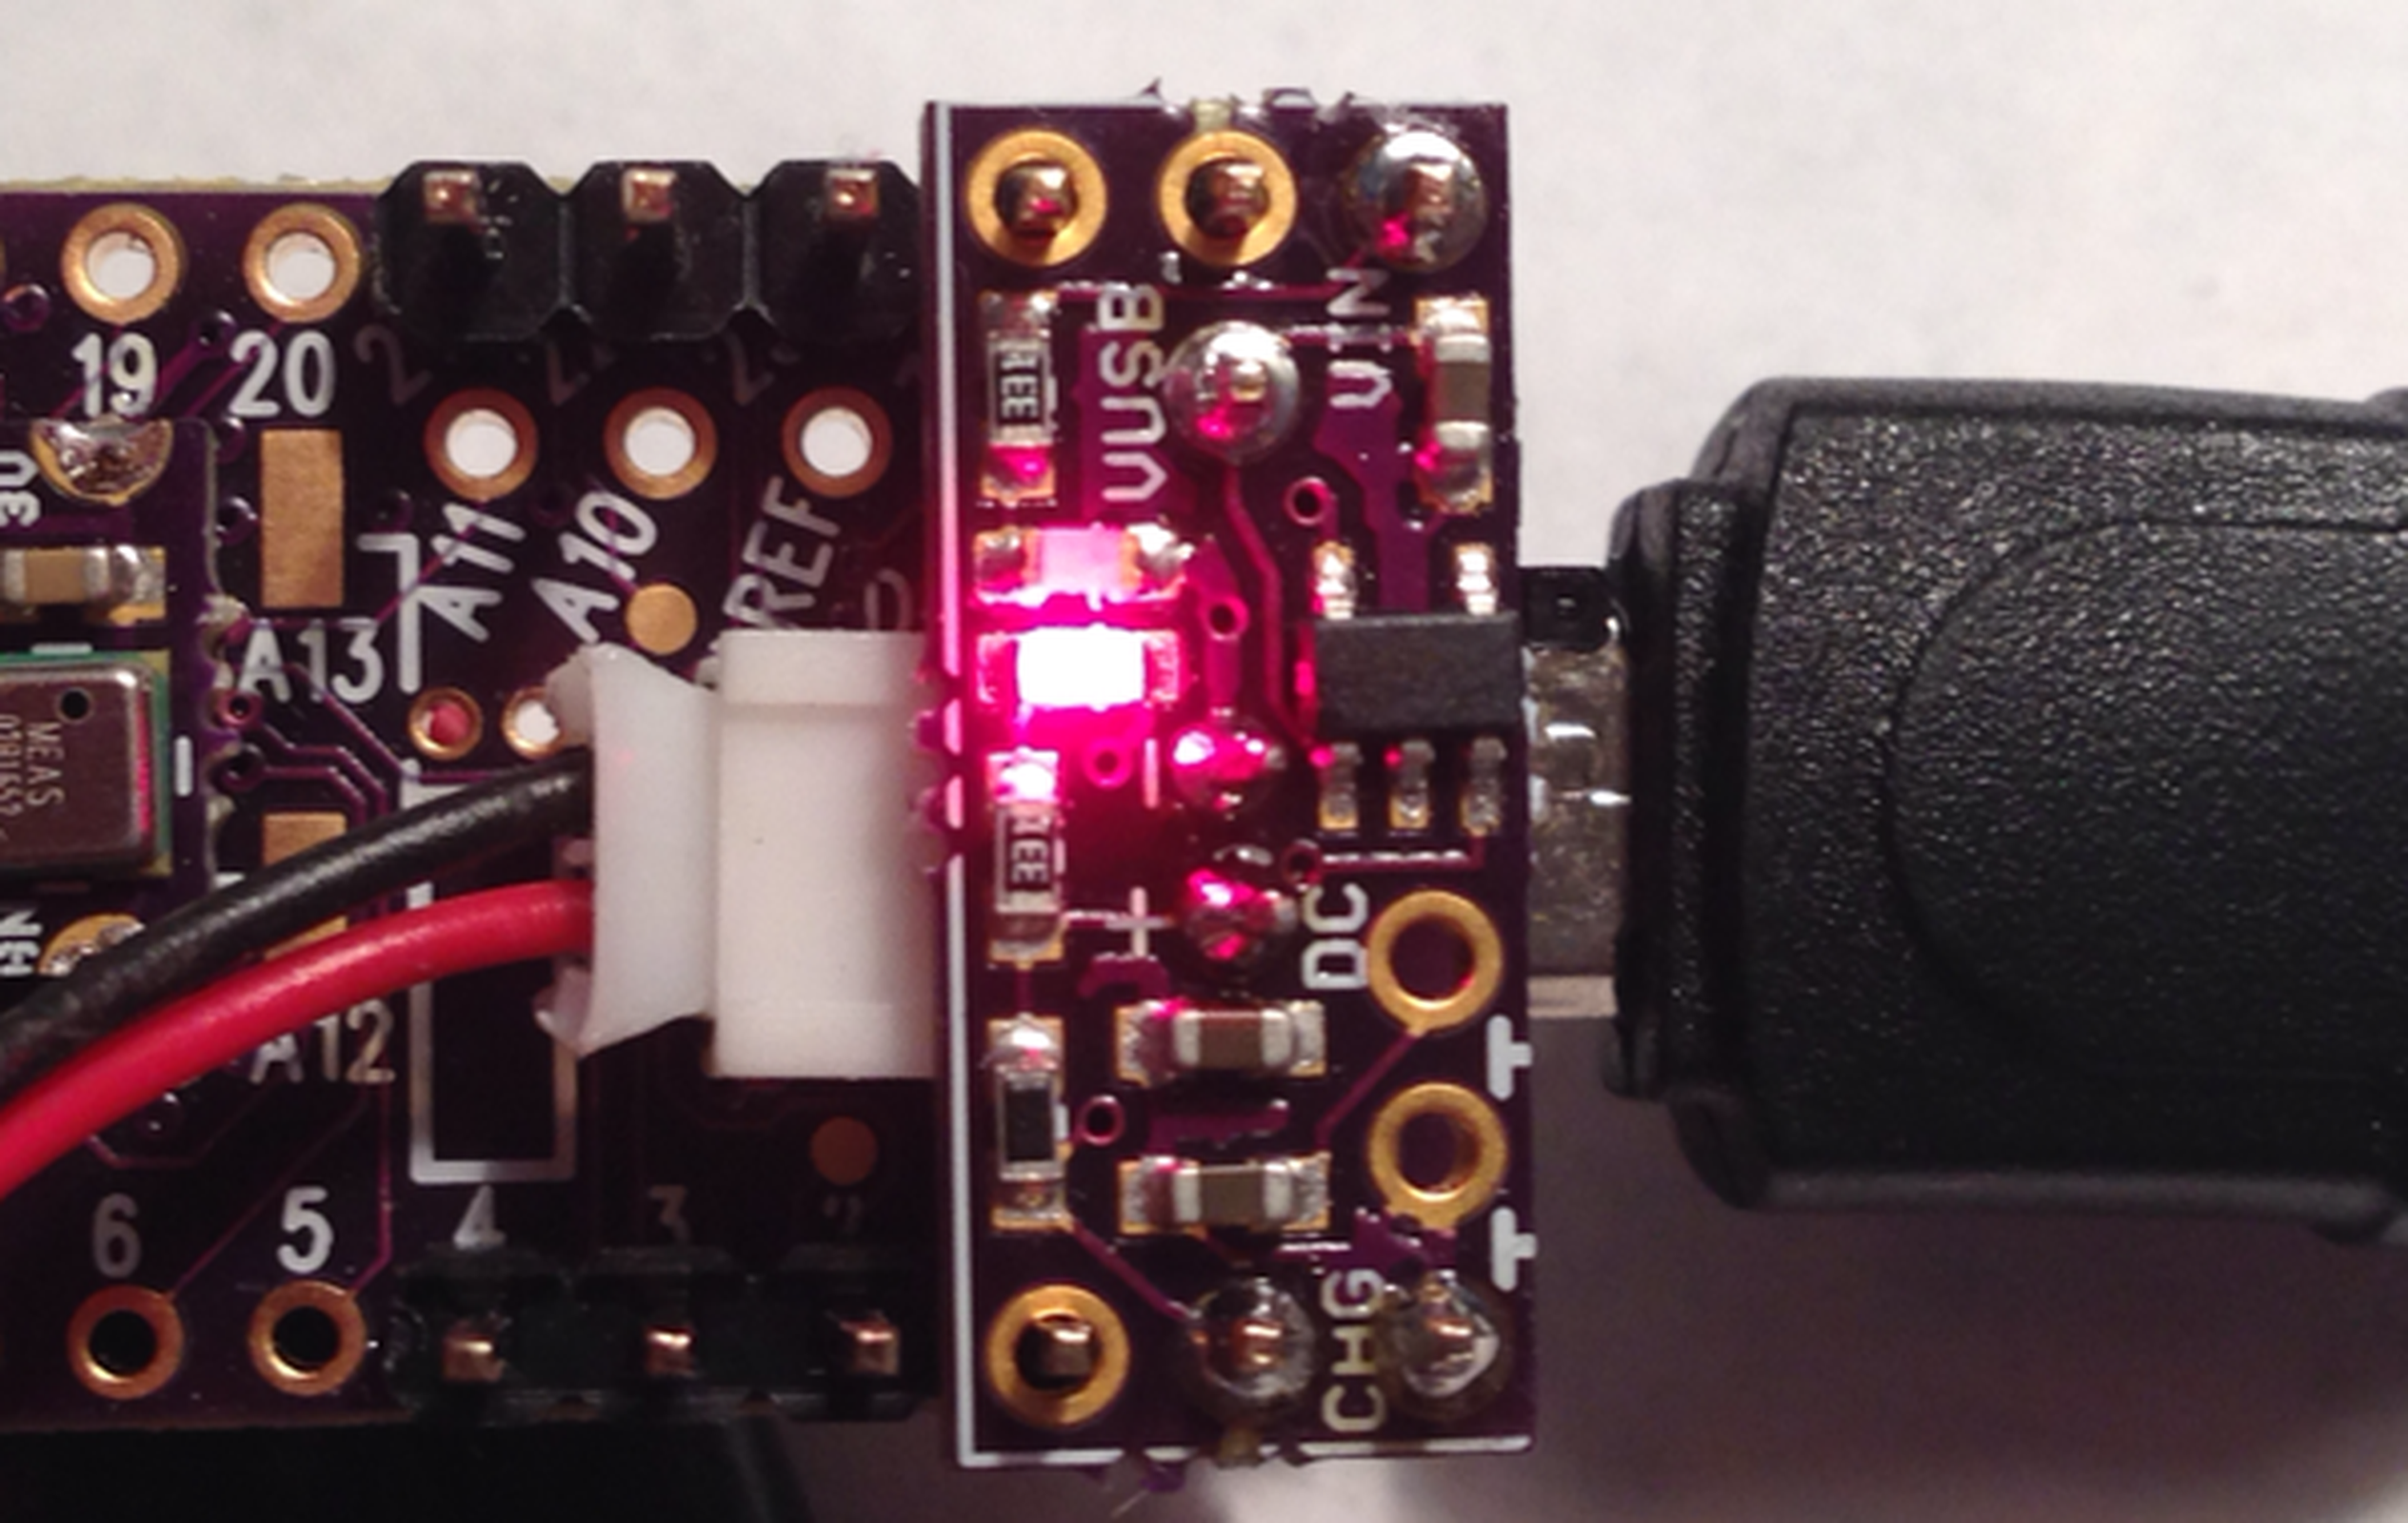 Lipo Battery Charger Add On For Teensy 31 From Pesky Products Tindie Common Symbols Include A Cell Switches Meters Power 1